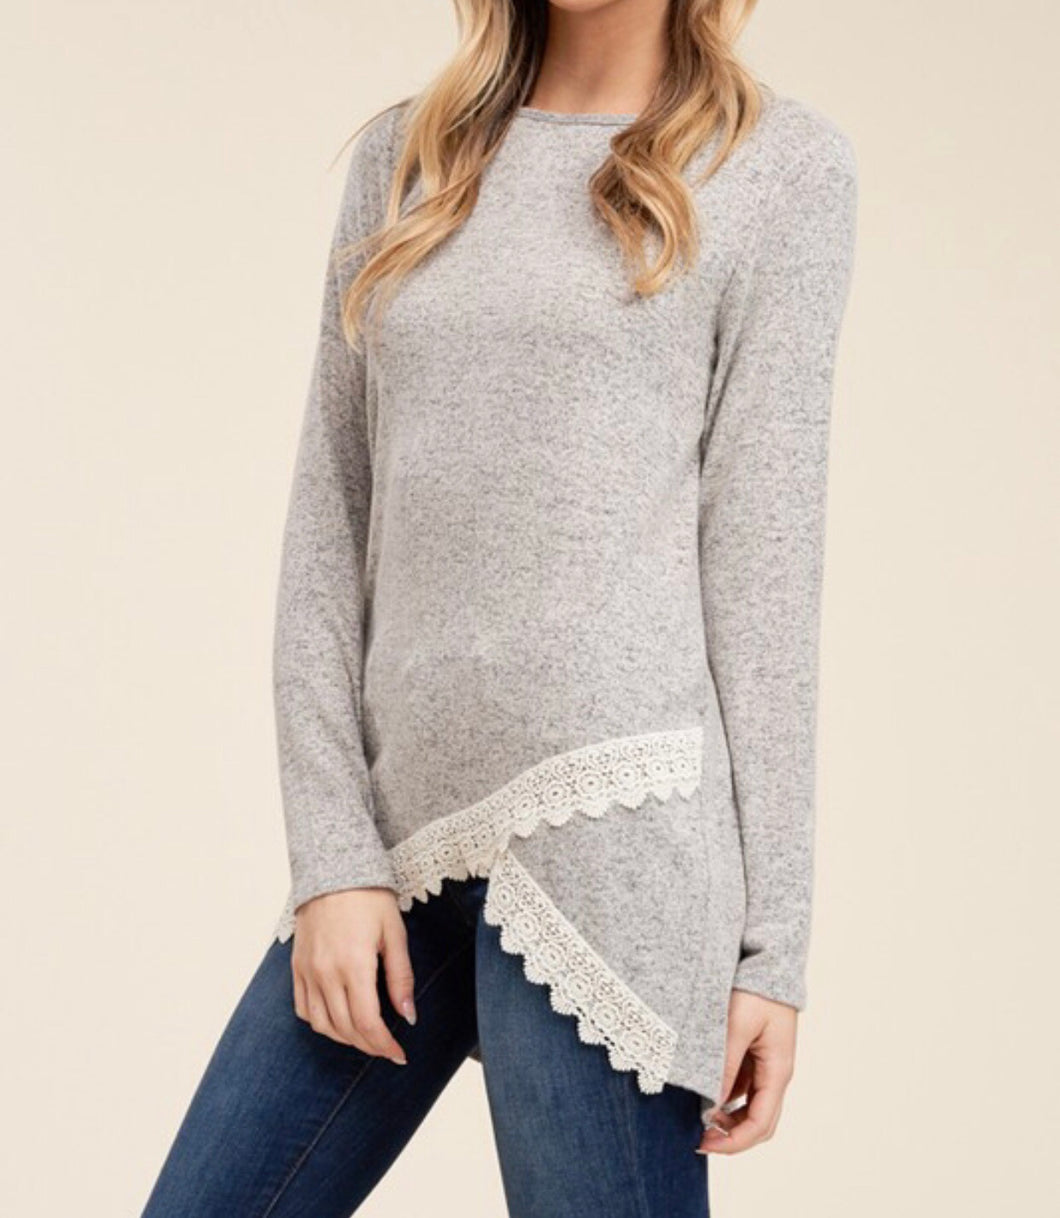 Layer Small Detail Top